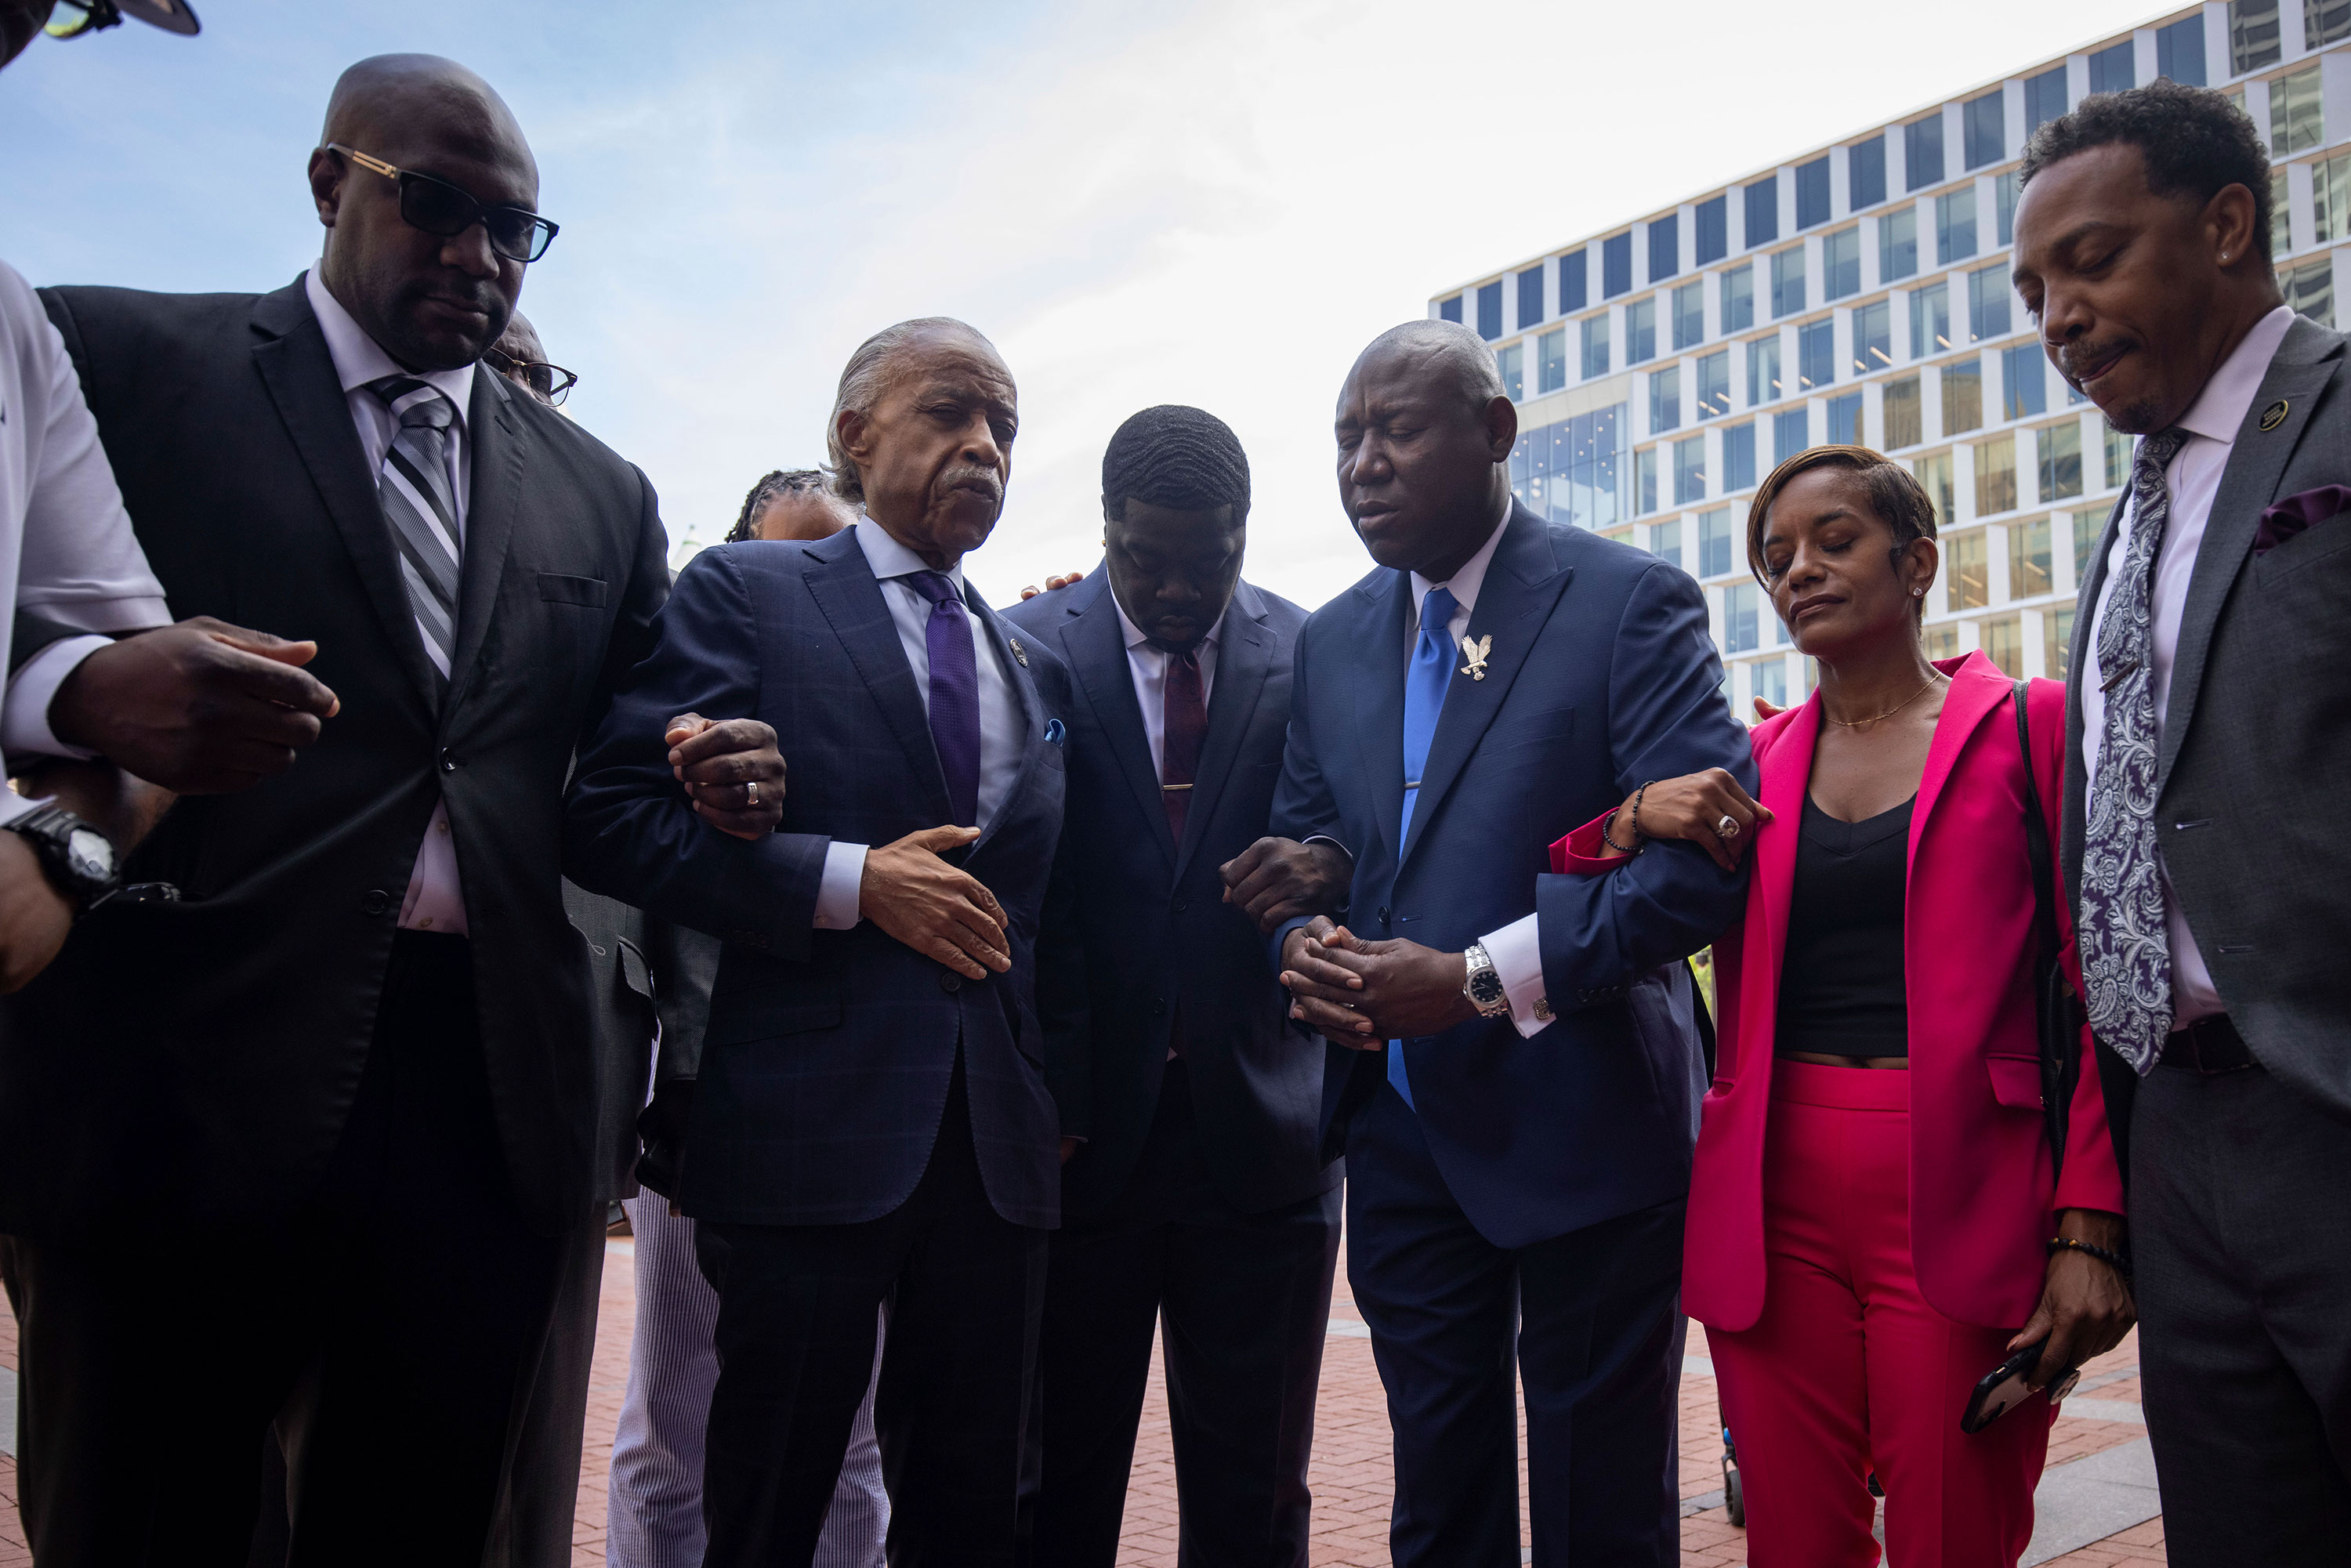 Rev. Al Sharpton and attorney Ben Crump hold a prayer with members of George Floyd's family outside of the Hennepin County Government Center in Minneapolis.